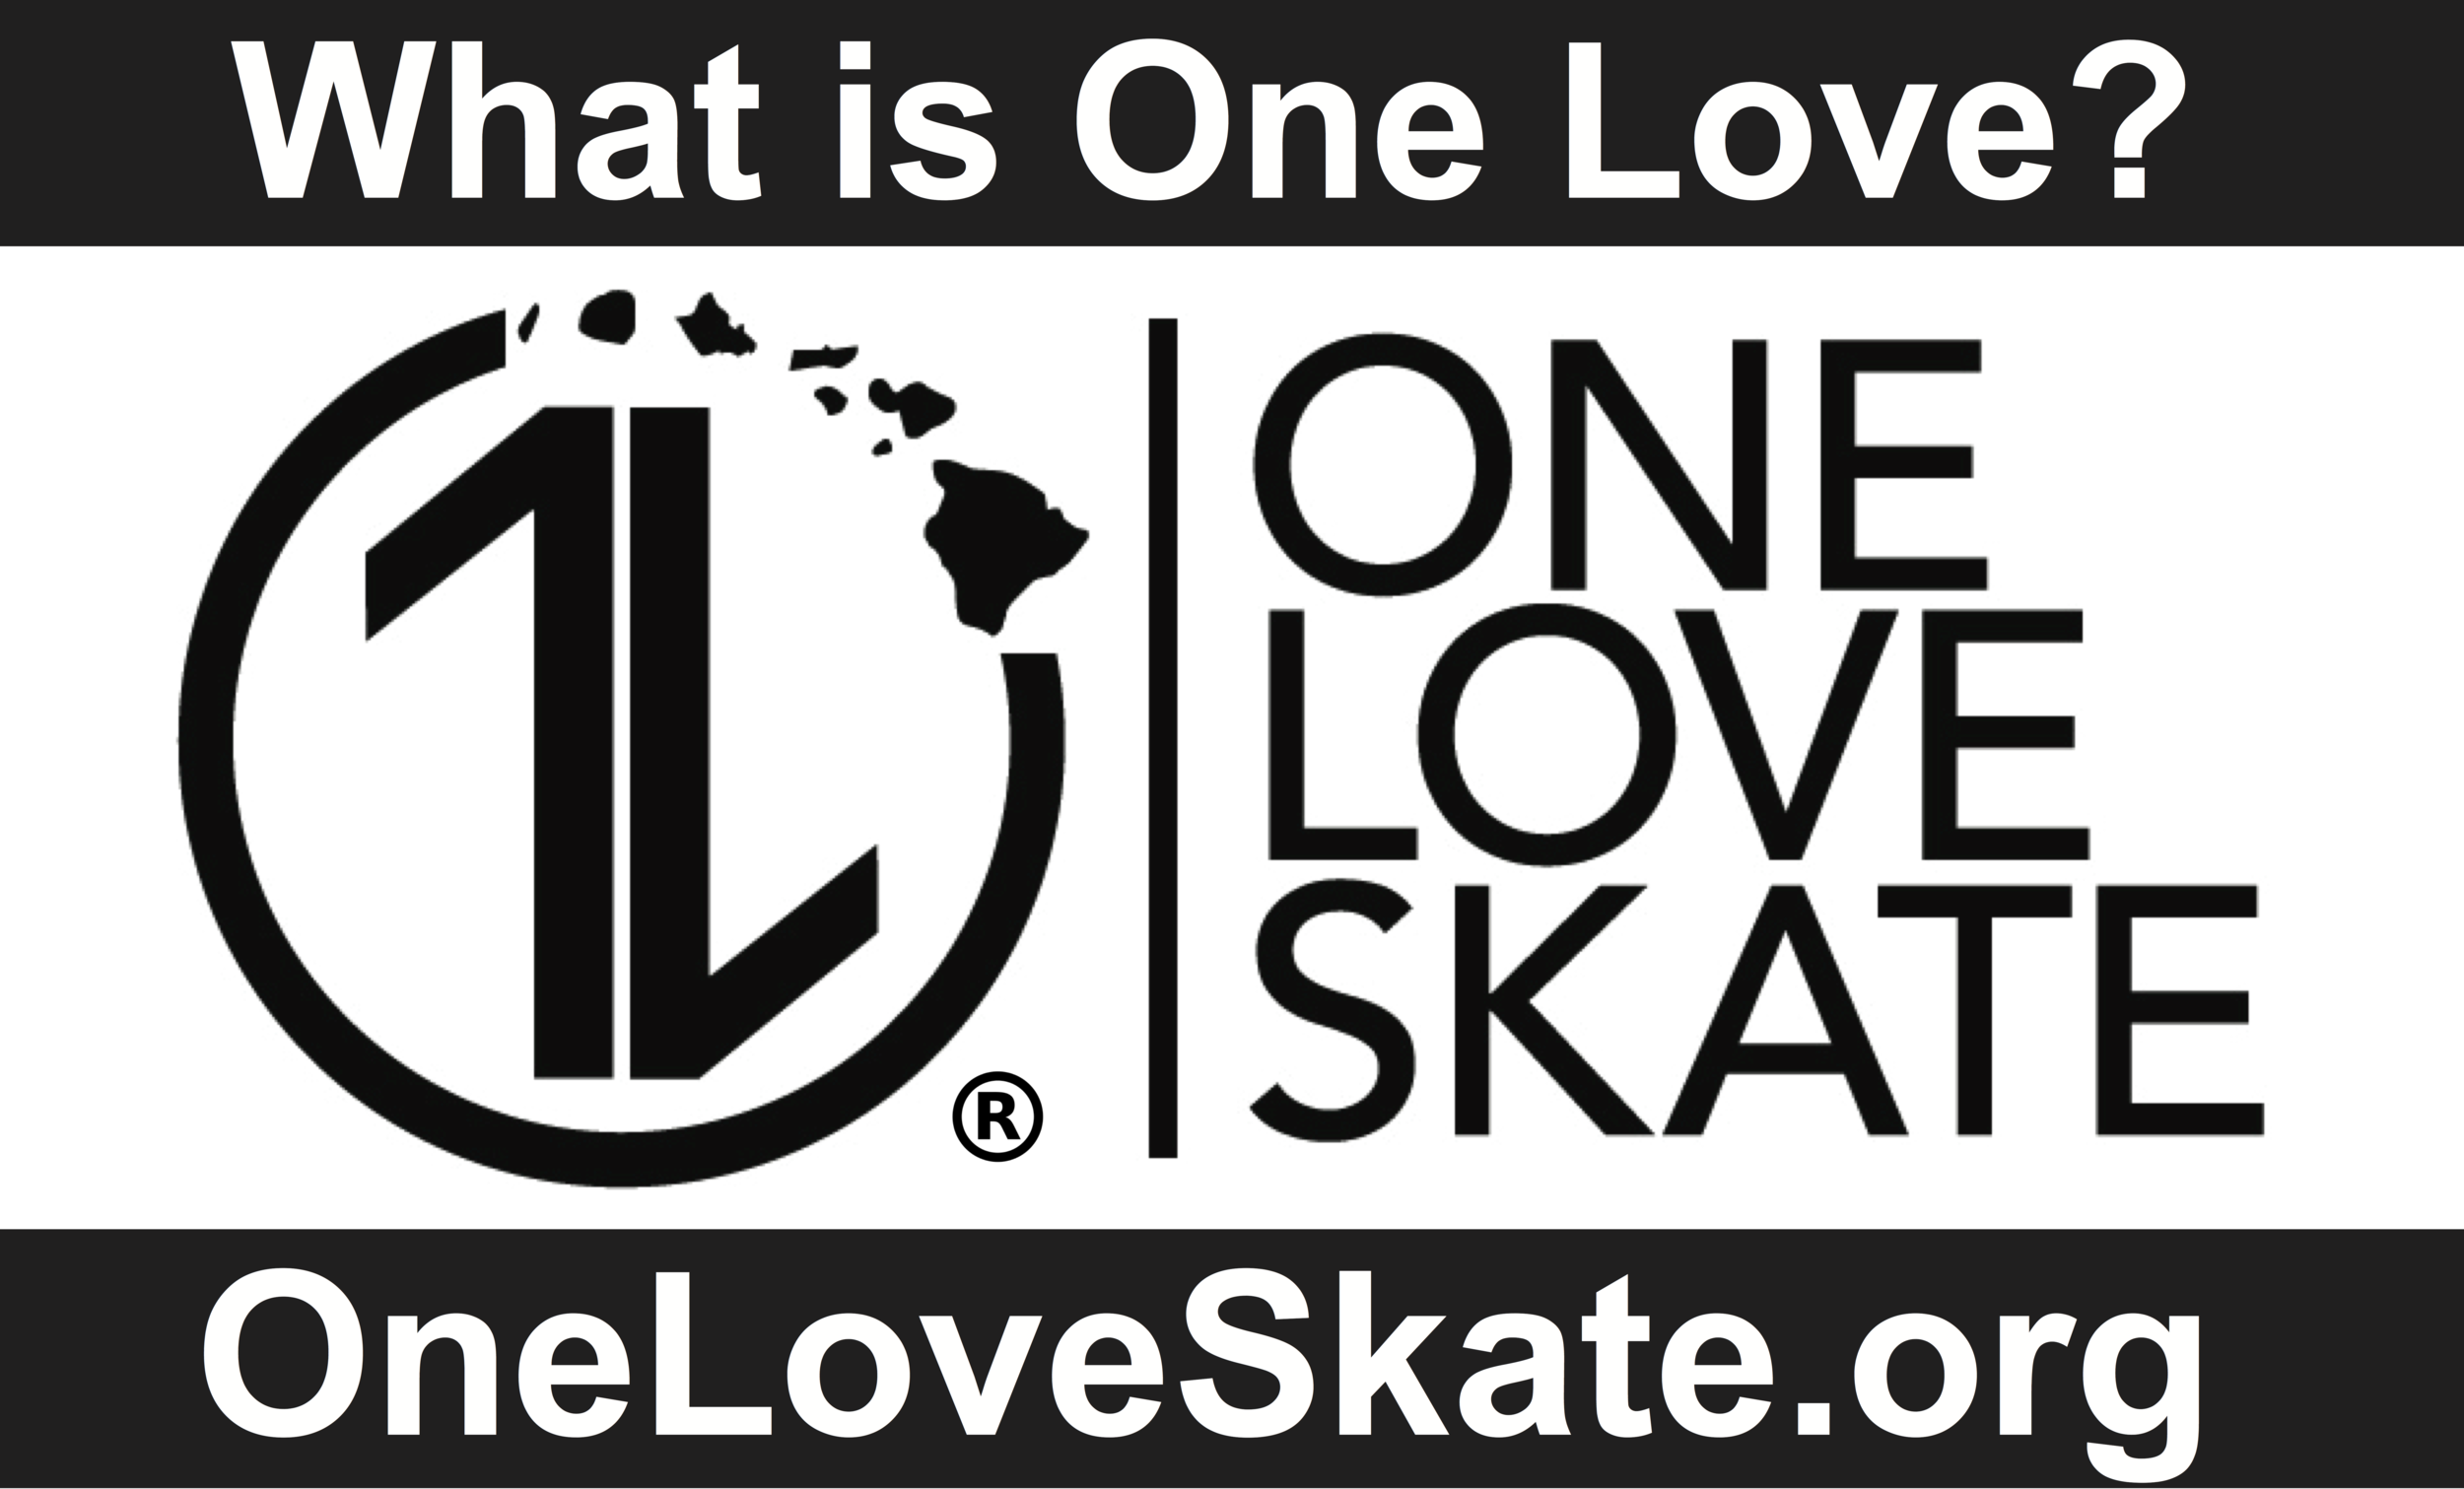 One Love Skate is an international evangelism and discipleship ministry dedicated to being a positive presence in communities all around the world by resourcing & equipping 1L Reps to #LiveOneLove.    Connect with us on oneloveskate.org to find out more.